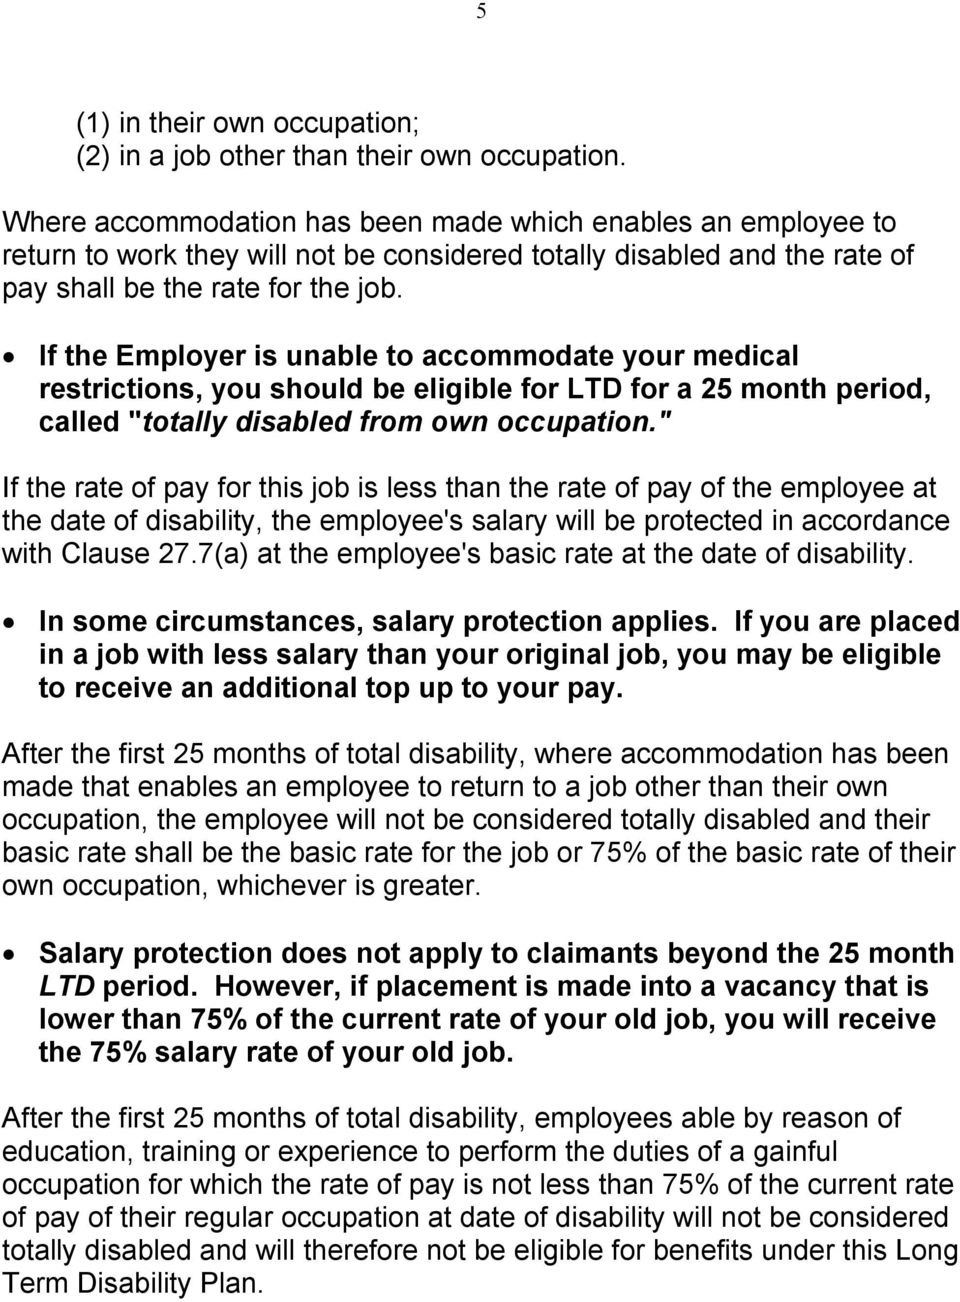 "If the Employer is unable to accommodate your medical restrictions, you should be eligible for LTD for a 25 month period, called ""totally disabled from own occupation."